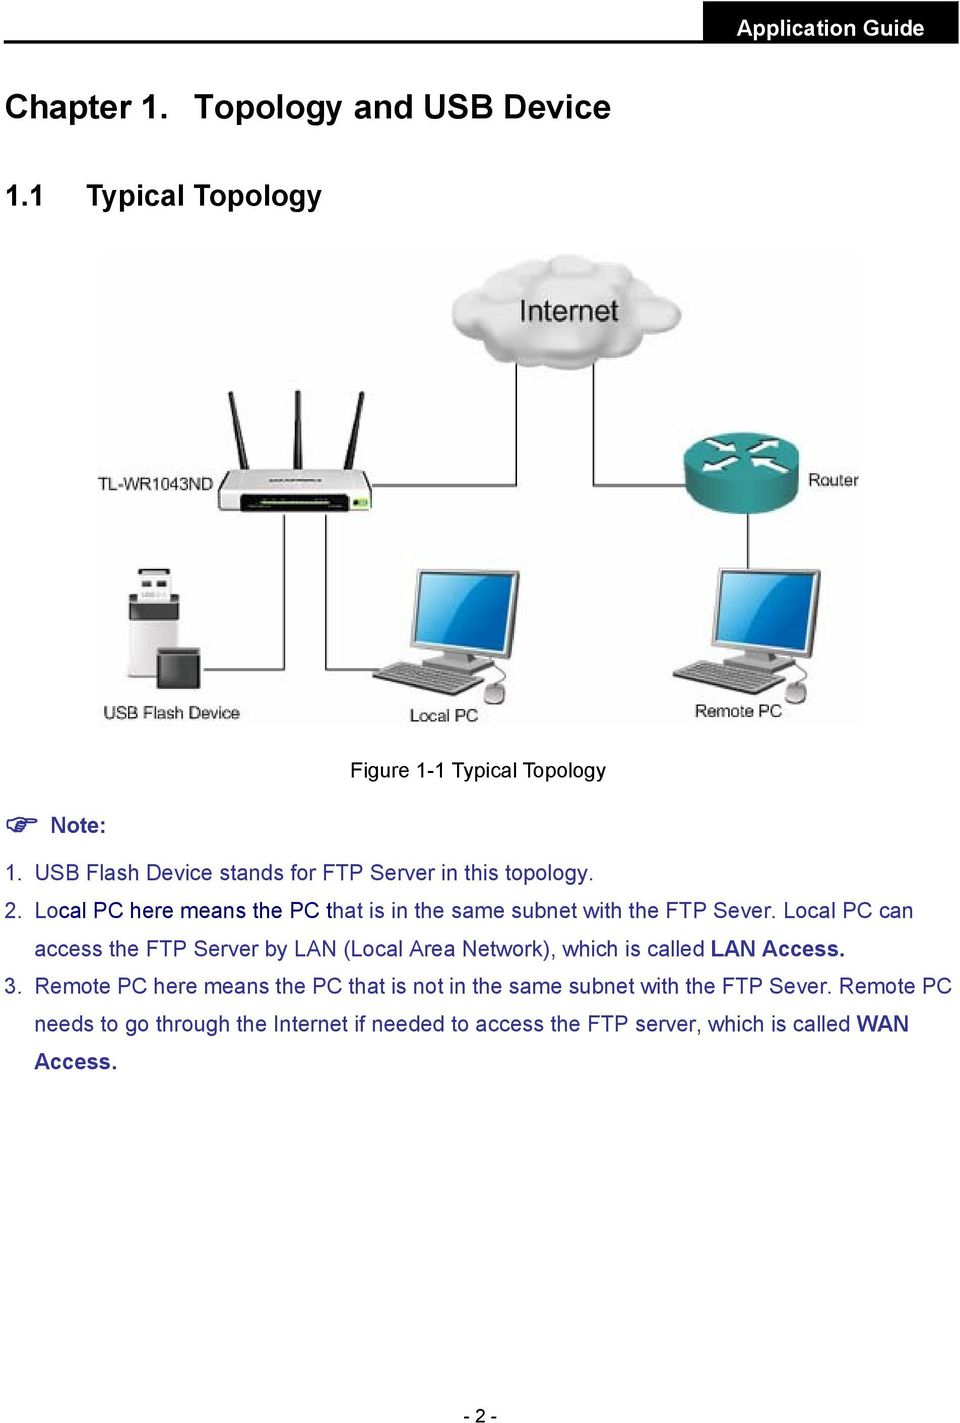 Local PC here means the PC that is in the same subnet with the FTP Sever.